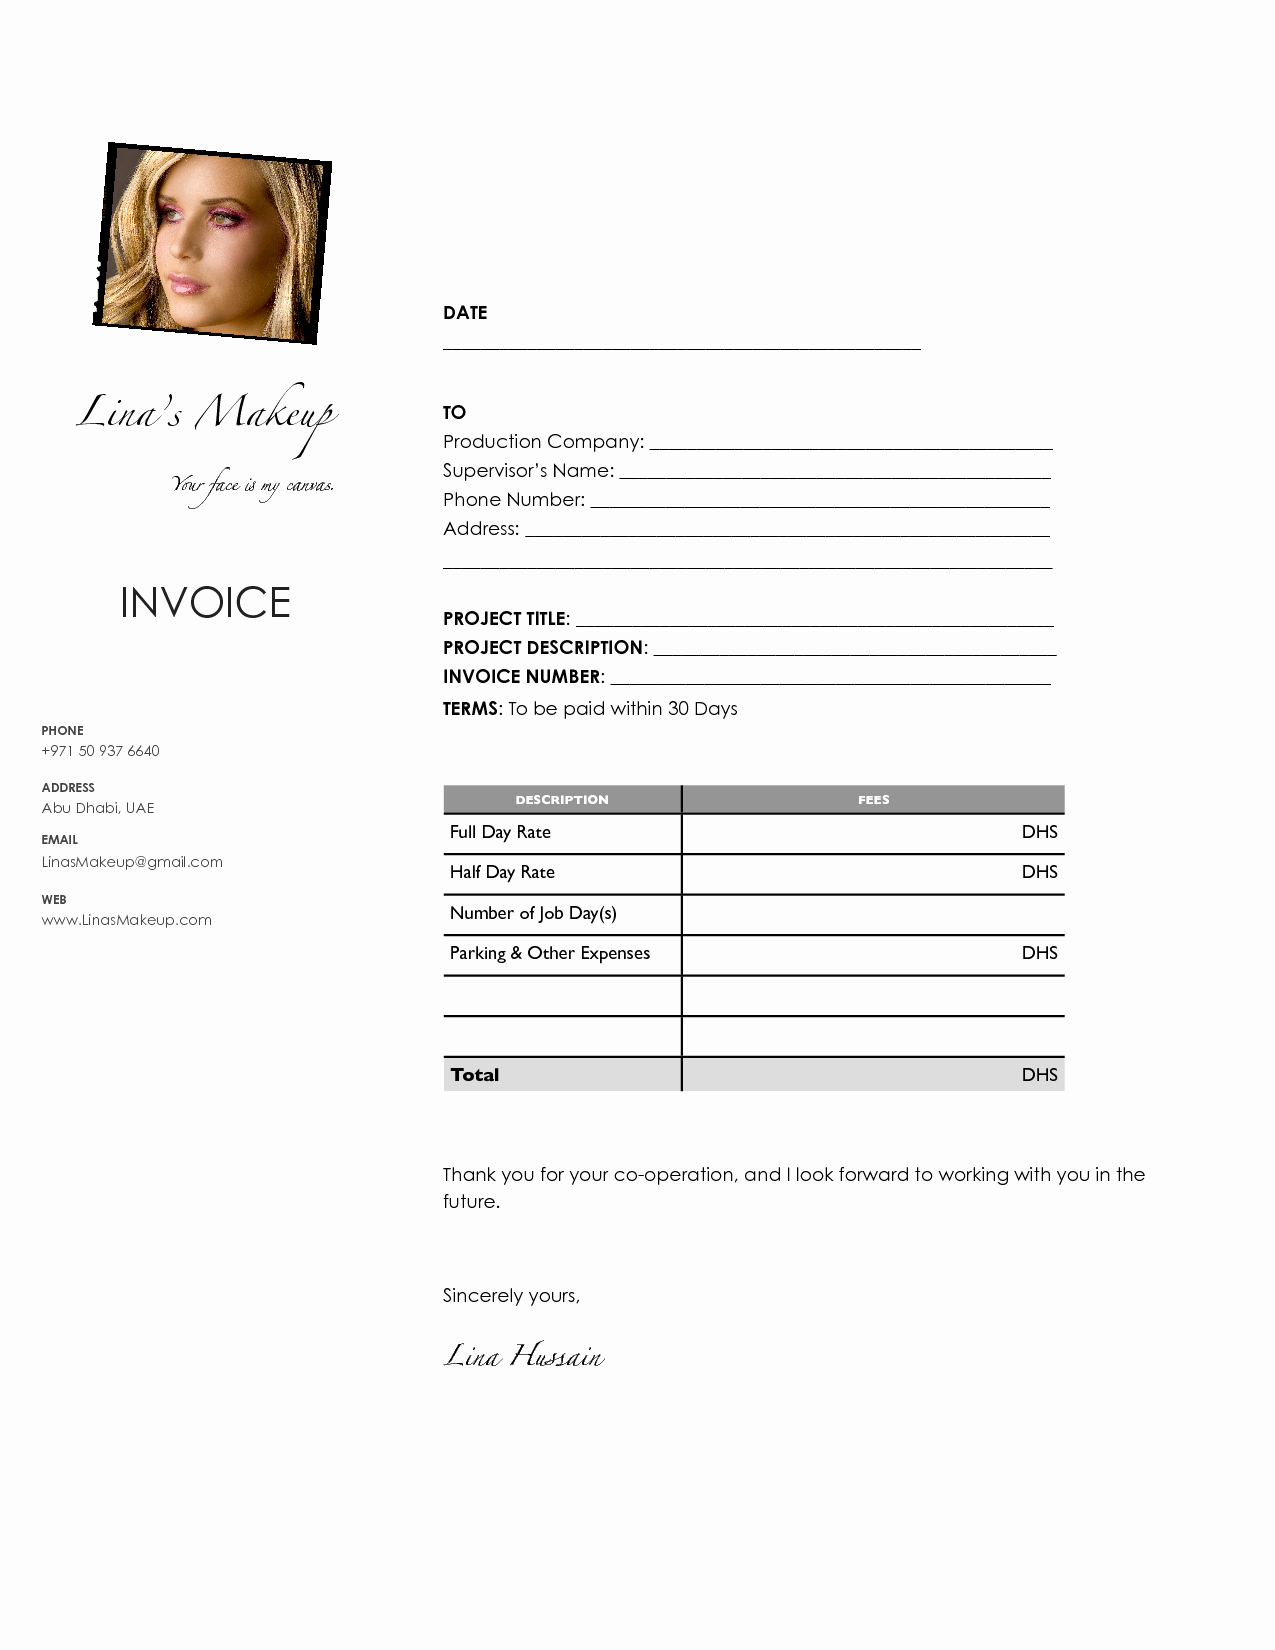 Makeup Artist Invoice Template Awesome Makeup Artist Invoice Template Uk Mugeek Vidalondon